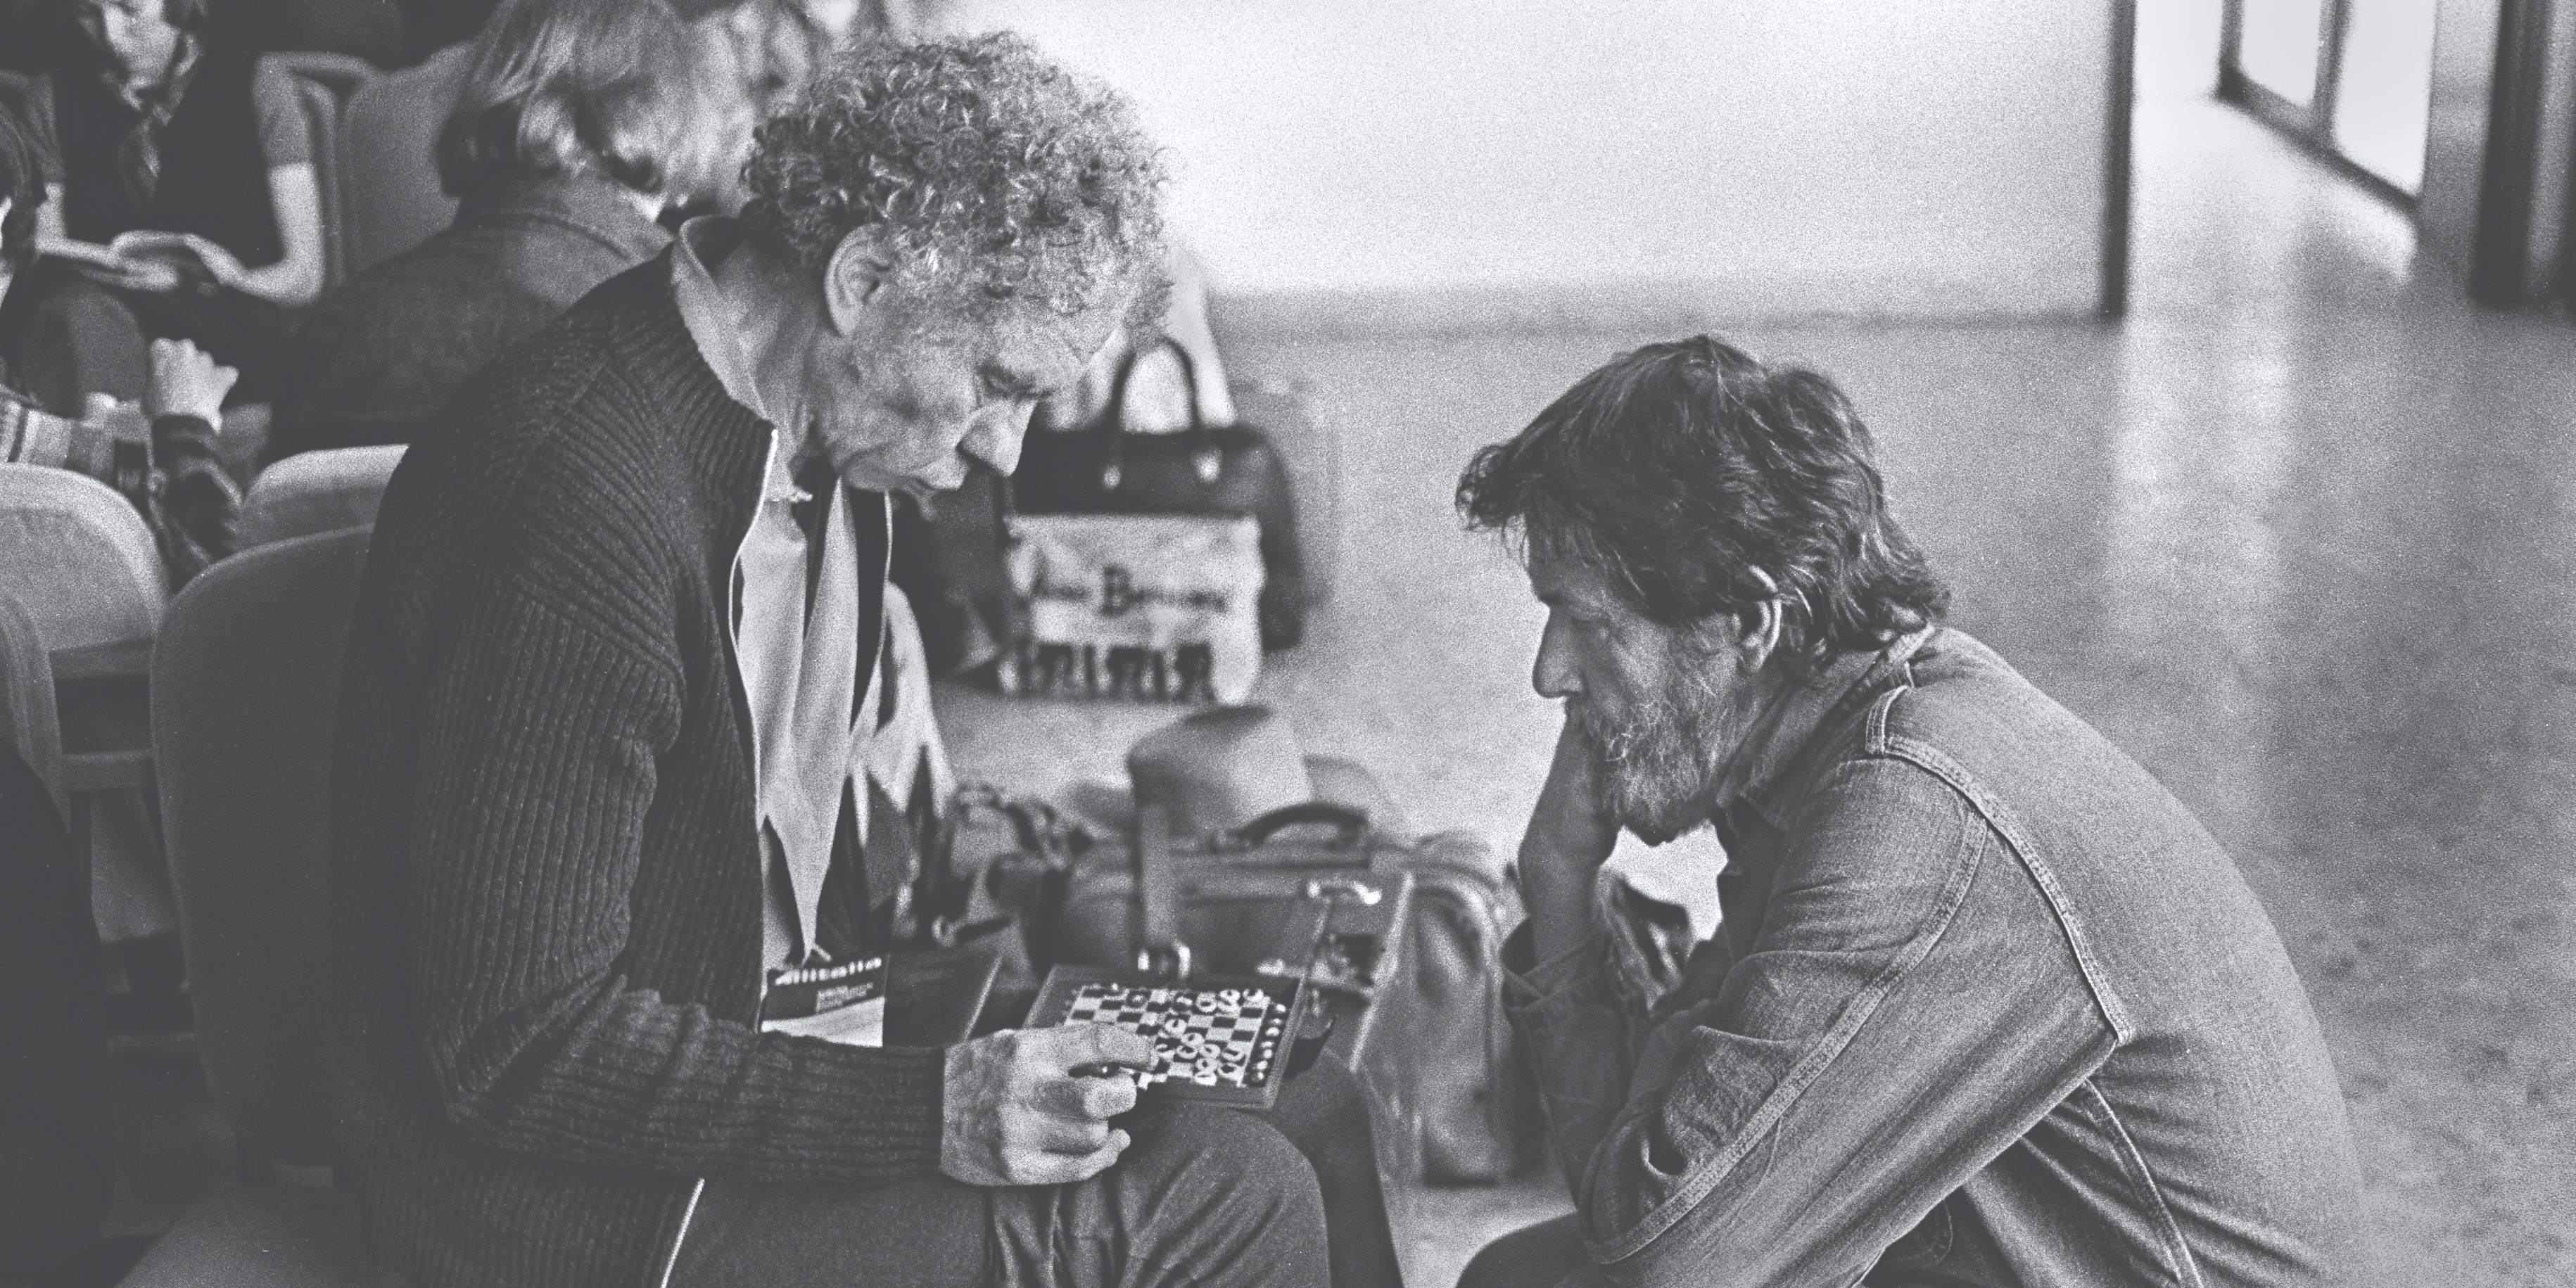 Merce Cunningham and John Cage. Photo: James Klosty, © James Klosty